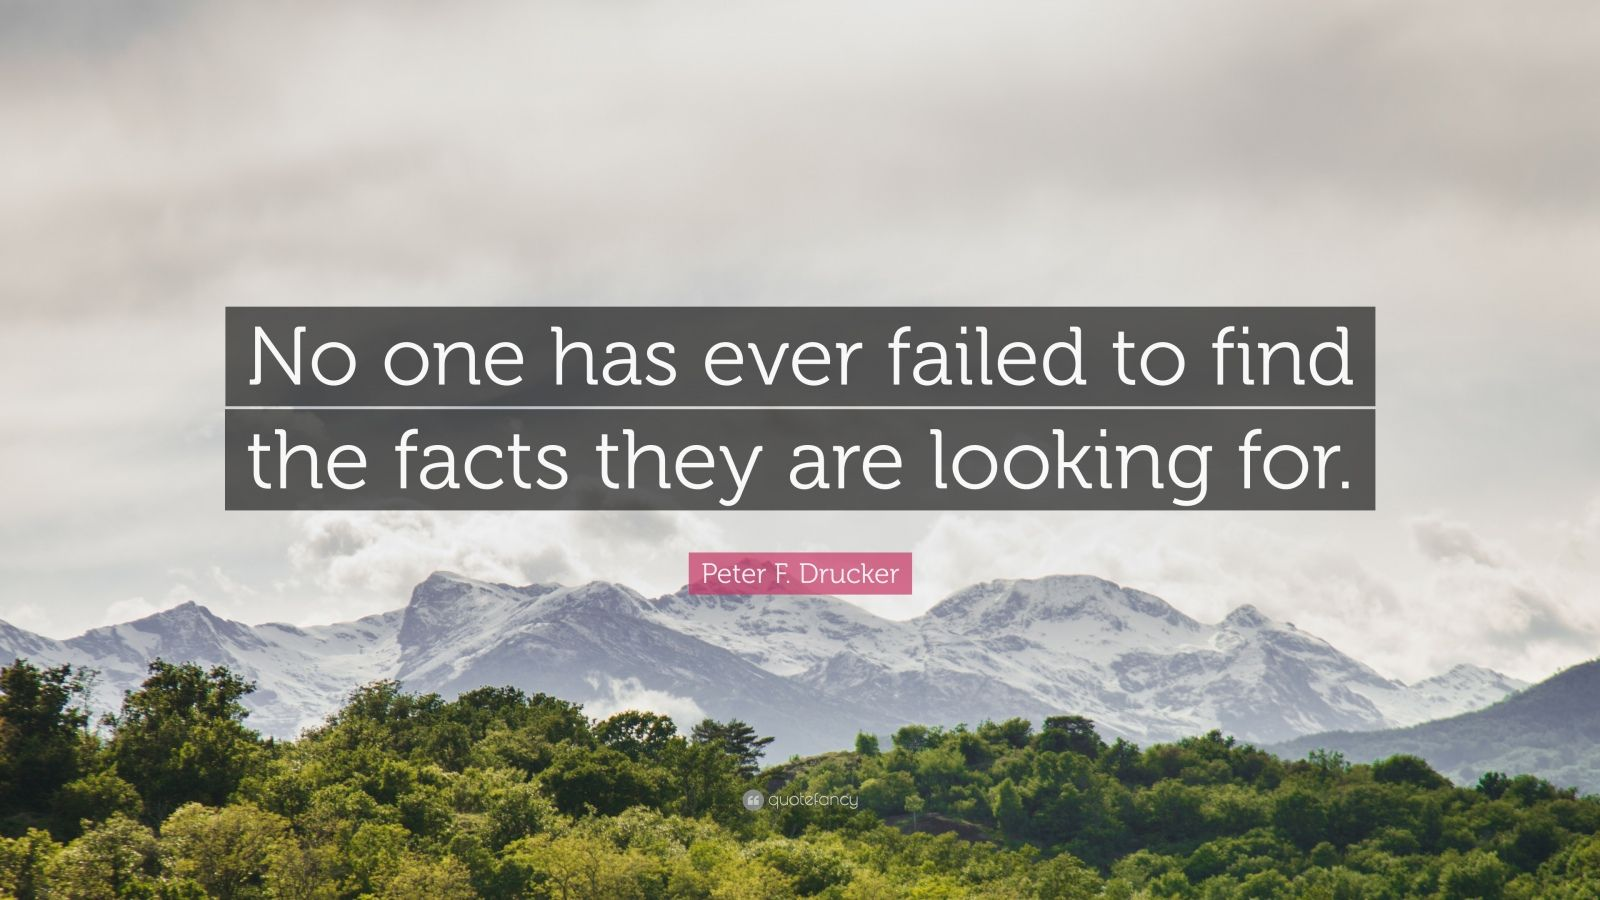 """Peter F. Drucker Quote: """"No one has ever failed to find the facts they are looking for."""""""